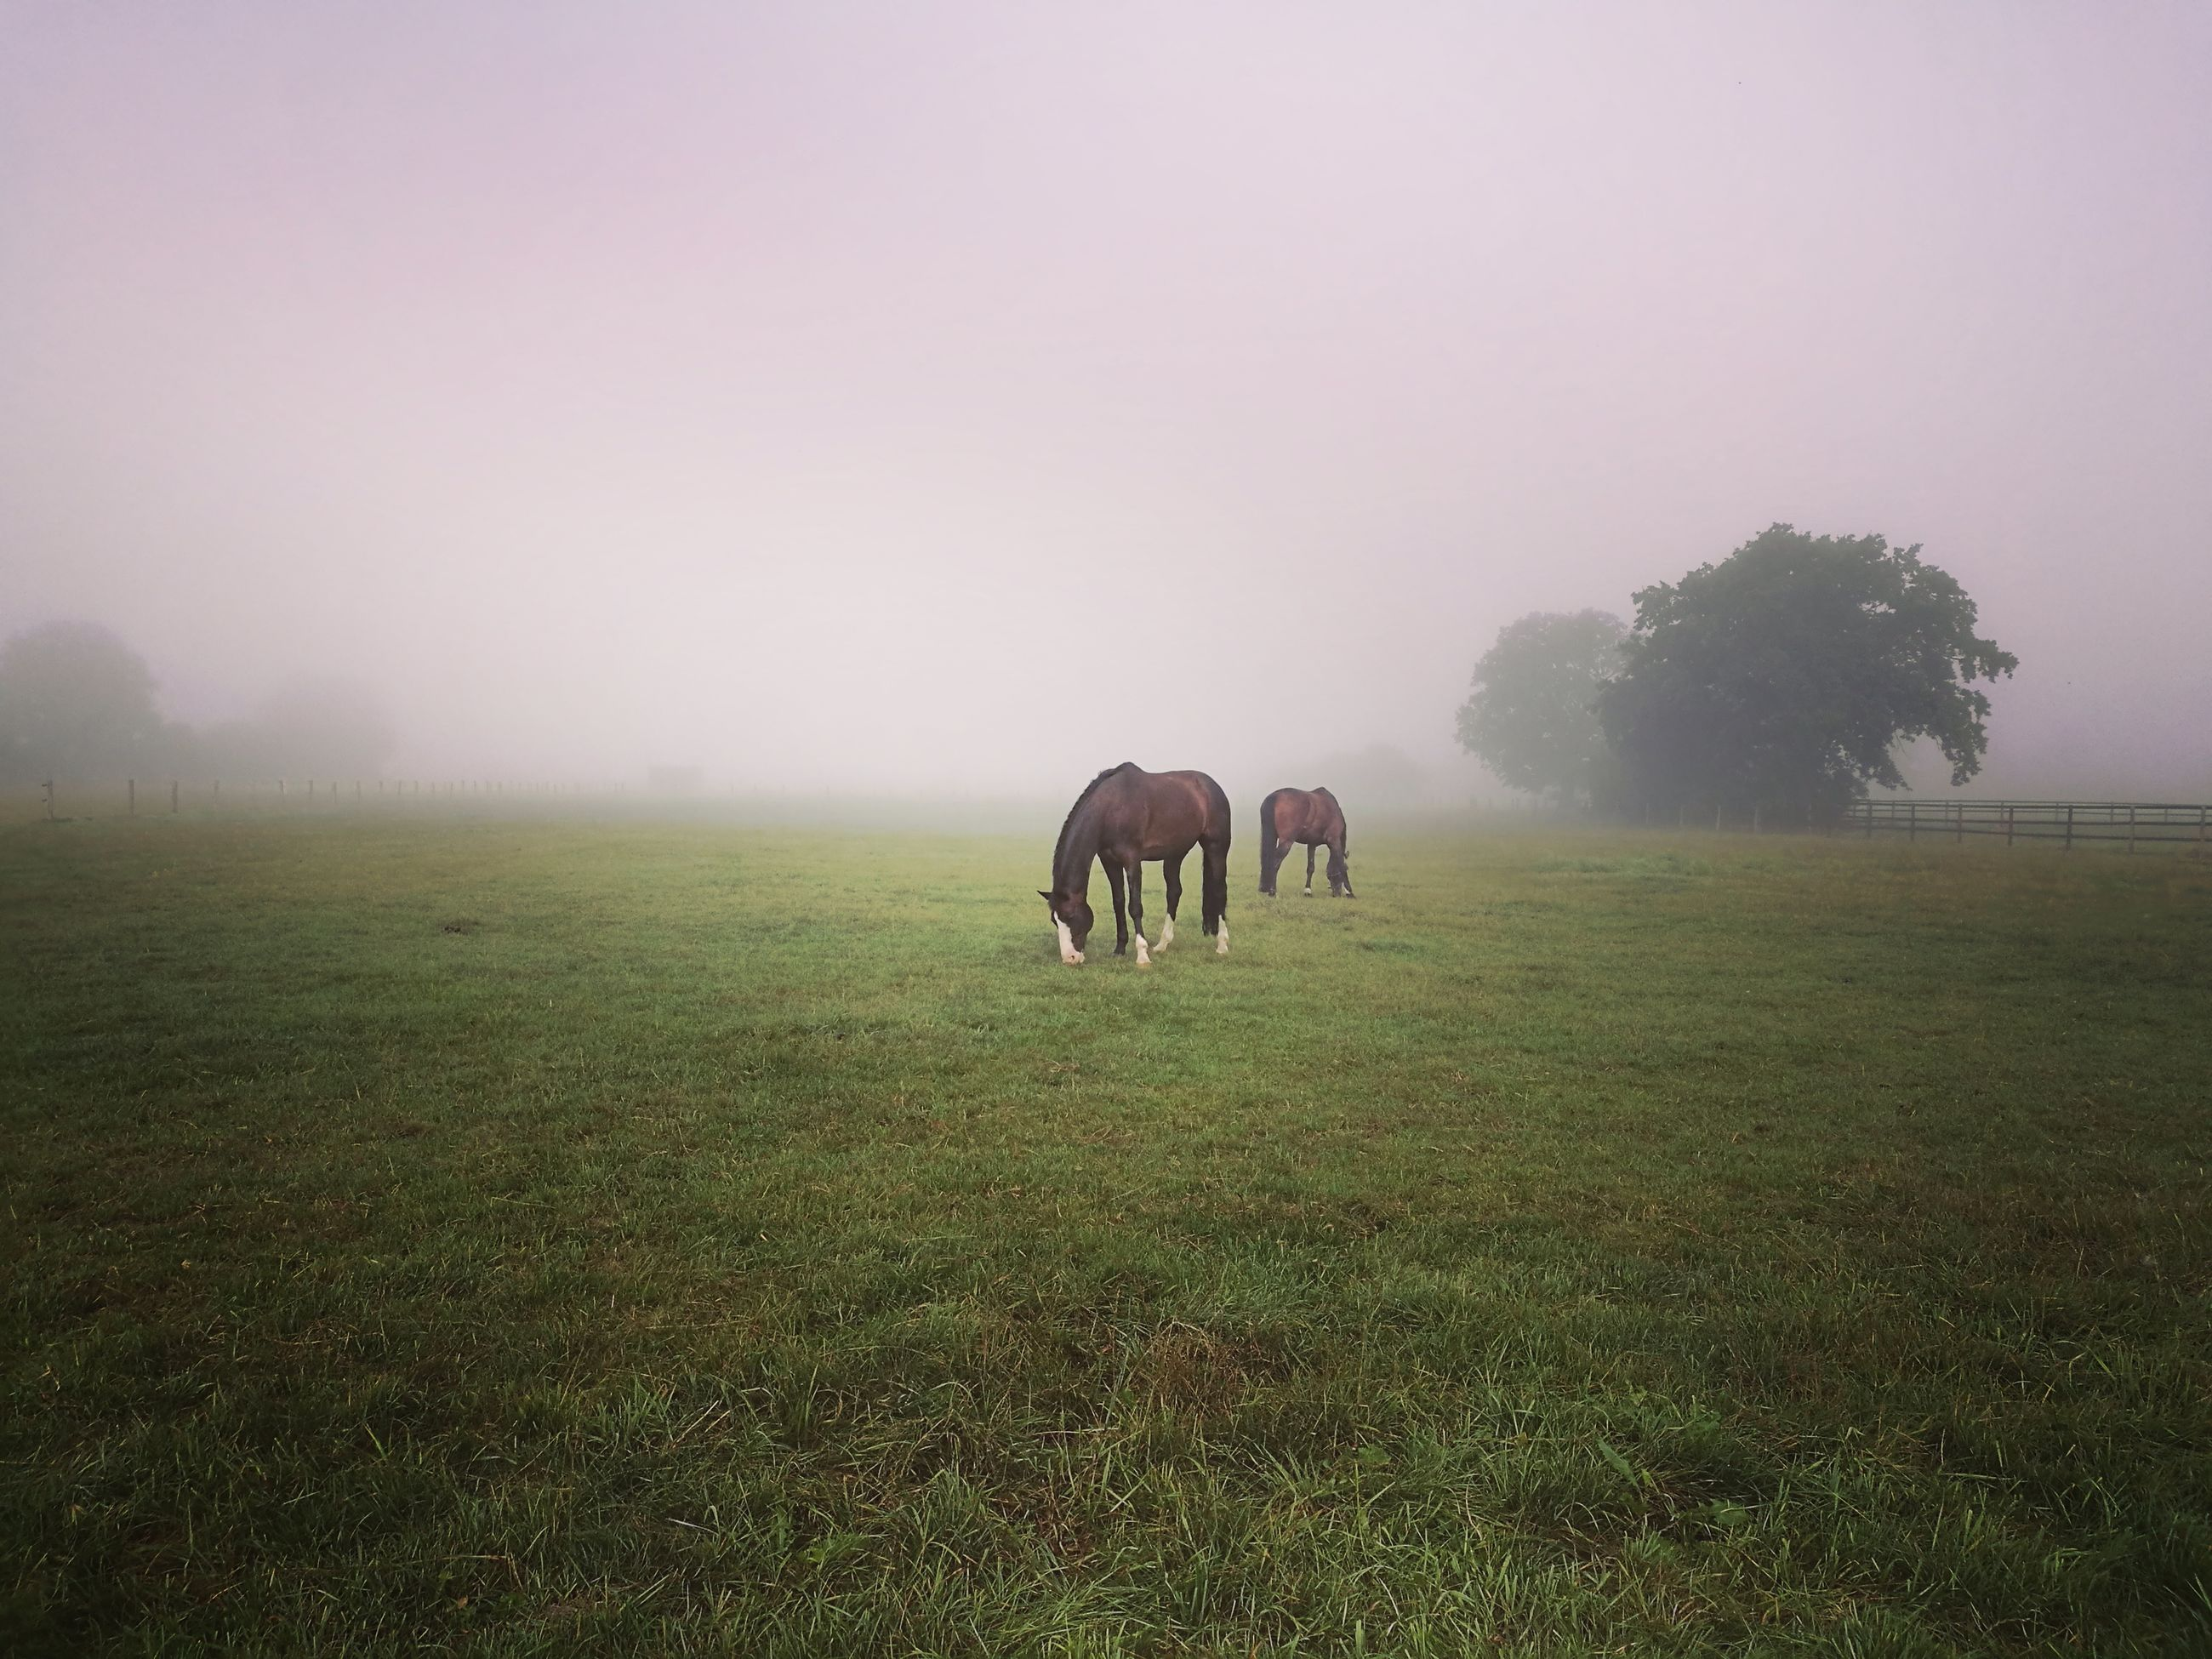 fog, animal themes, domestic animals, horse, grass, foggy, livestock, field, weather, tranquil scene, tranquility, full length, grazing, landscape, green color, copy space, mammal, herbivorous, nature, beauty in nature, grassy, pasture, scenics, green, day, mist, grass area, non-urban scene, rural scene, zoology